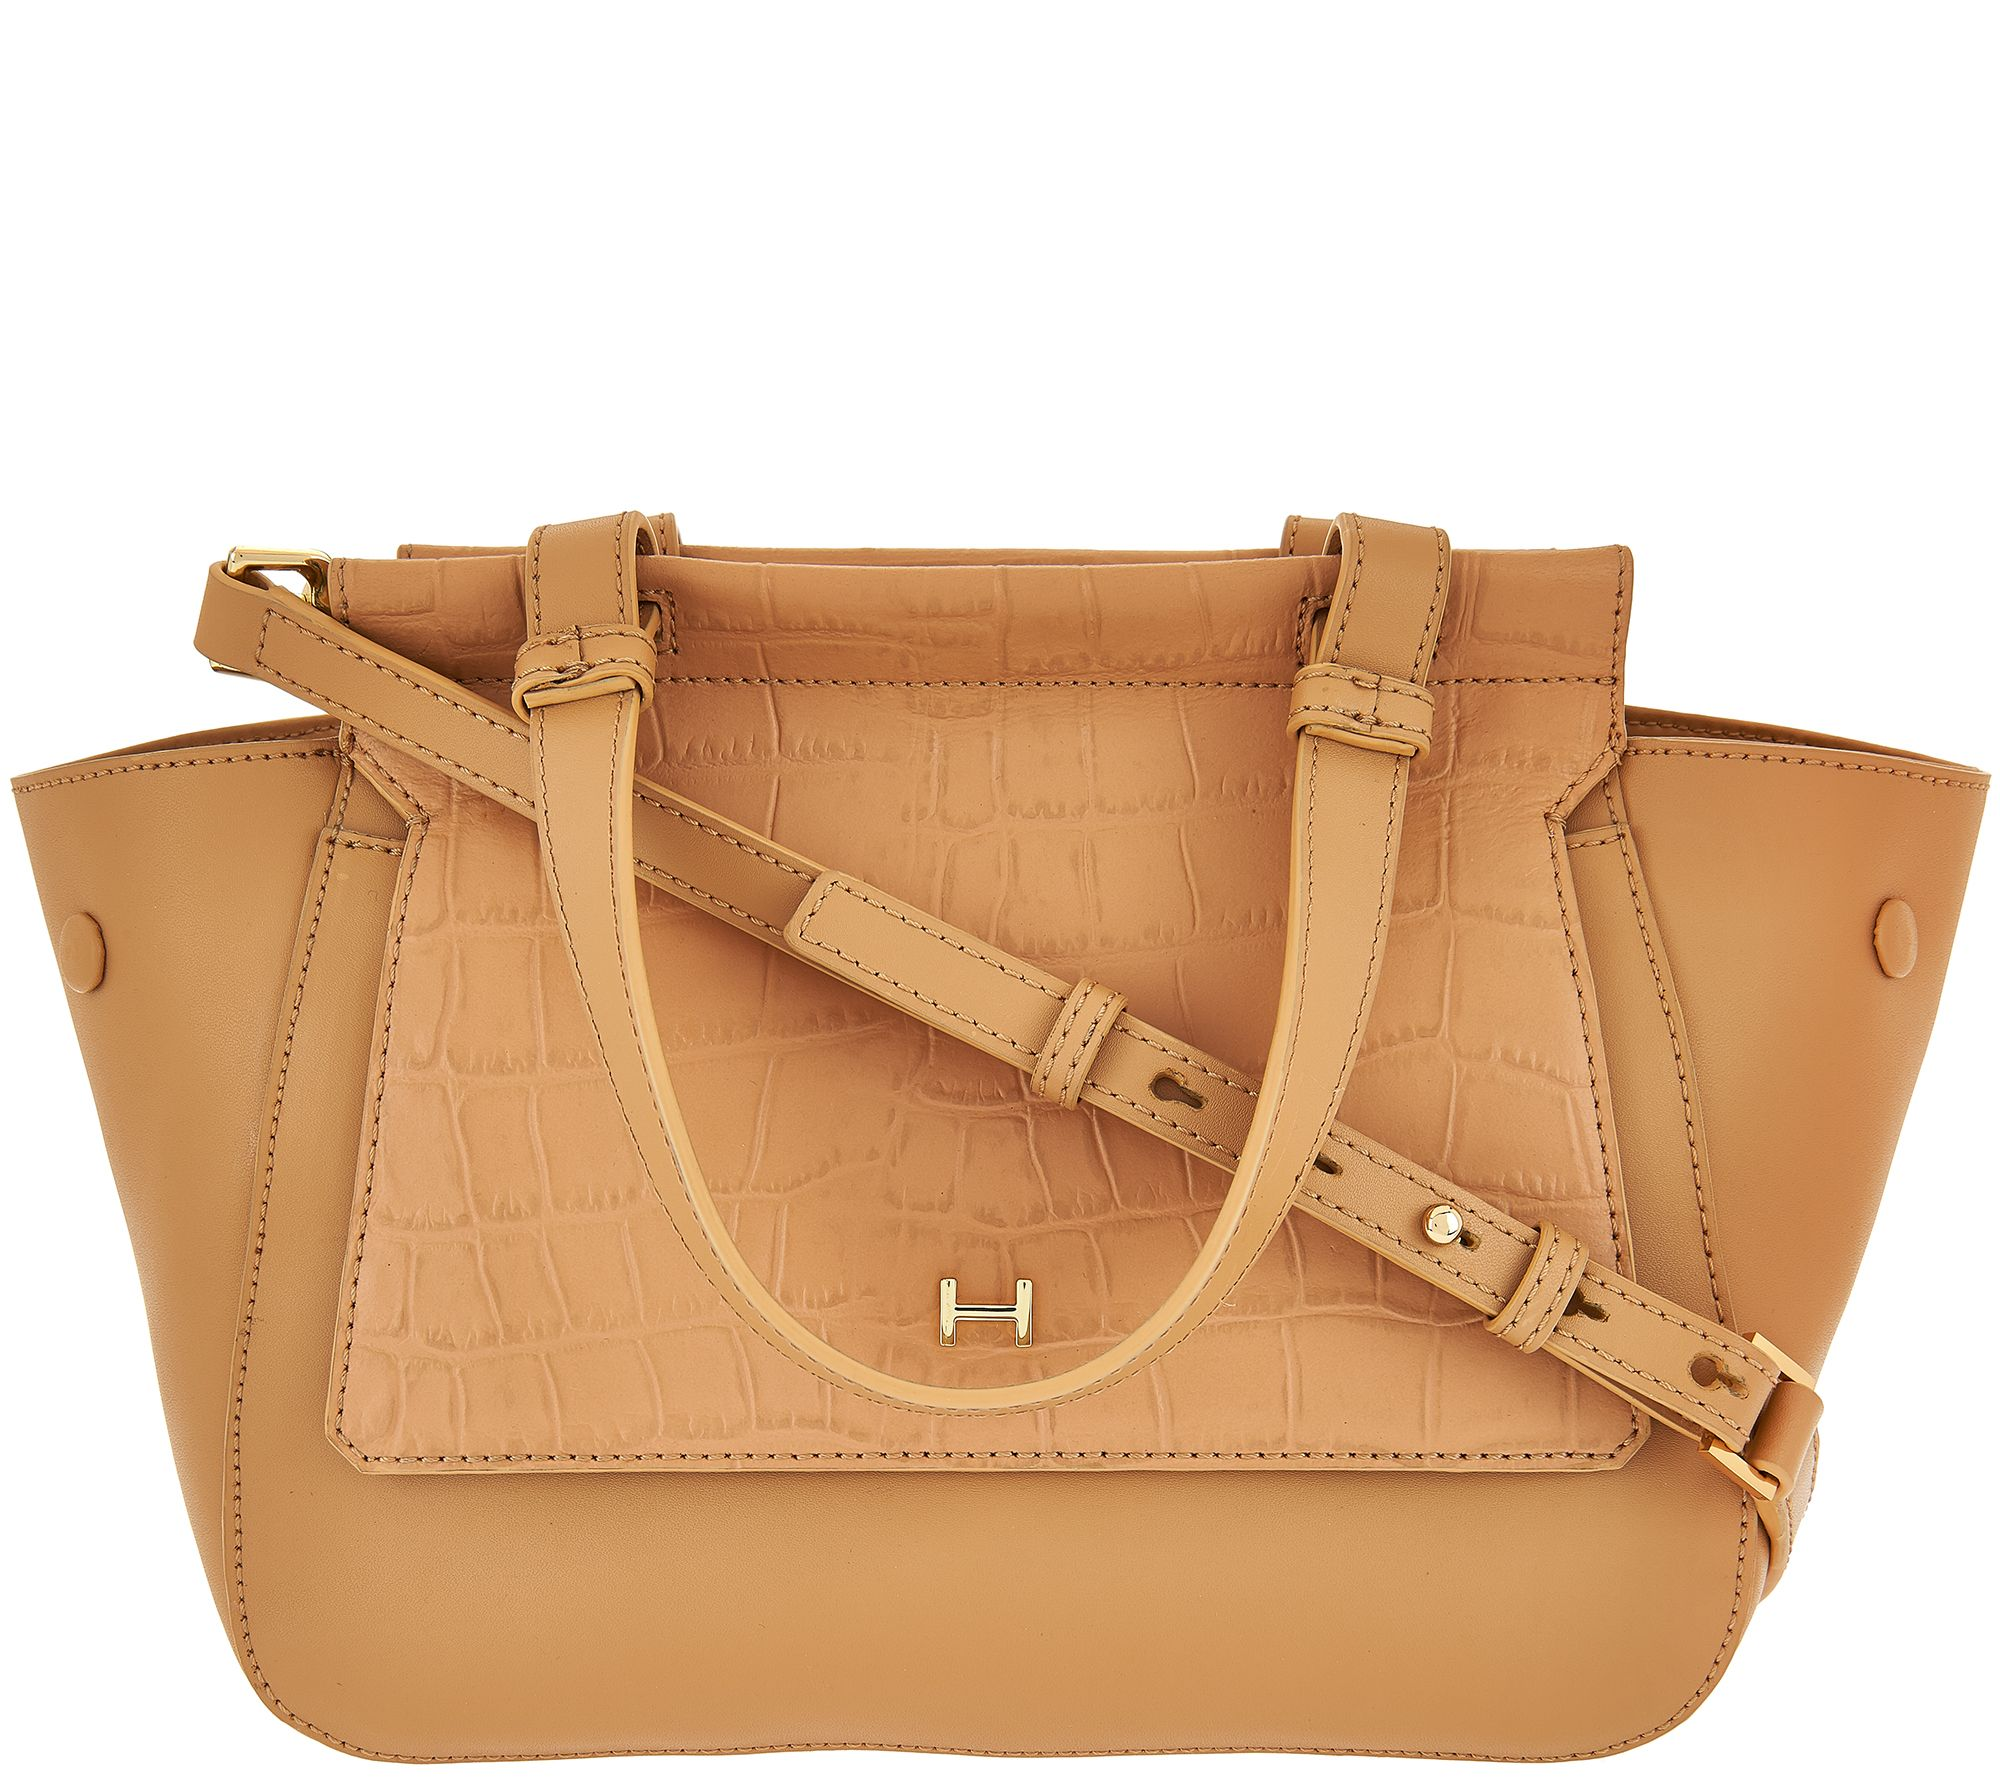 H by Halston Crossbody Satchel with Croco Embossed Flap - A274064